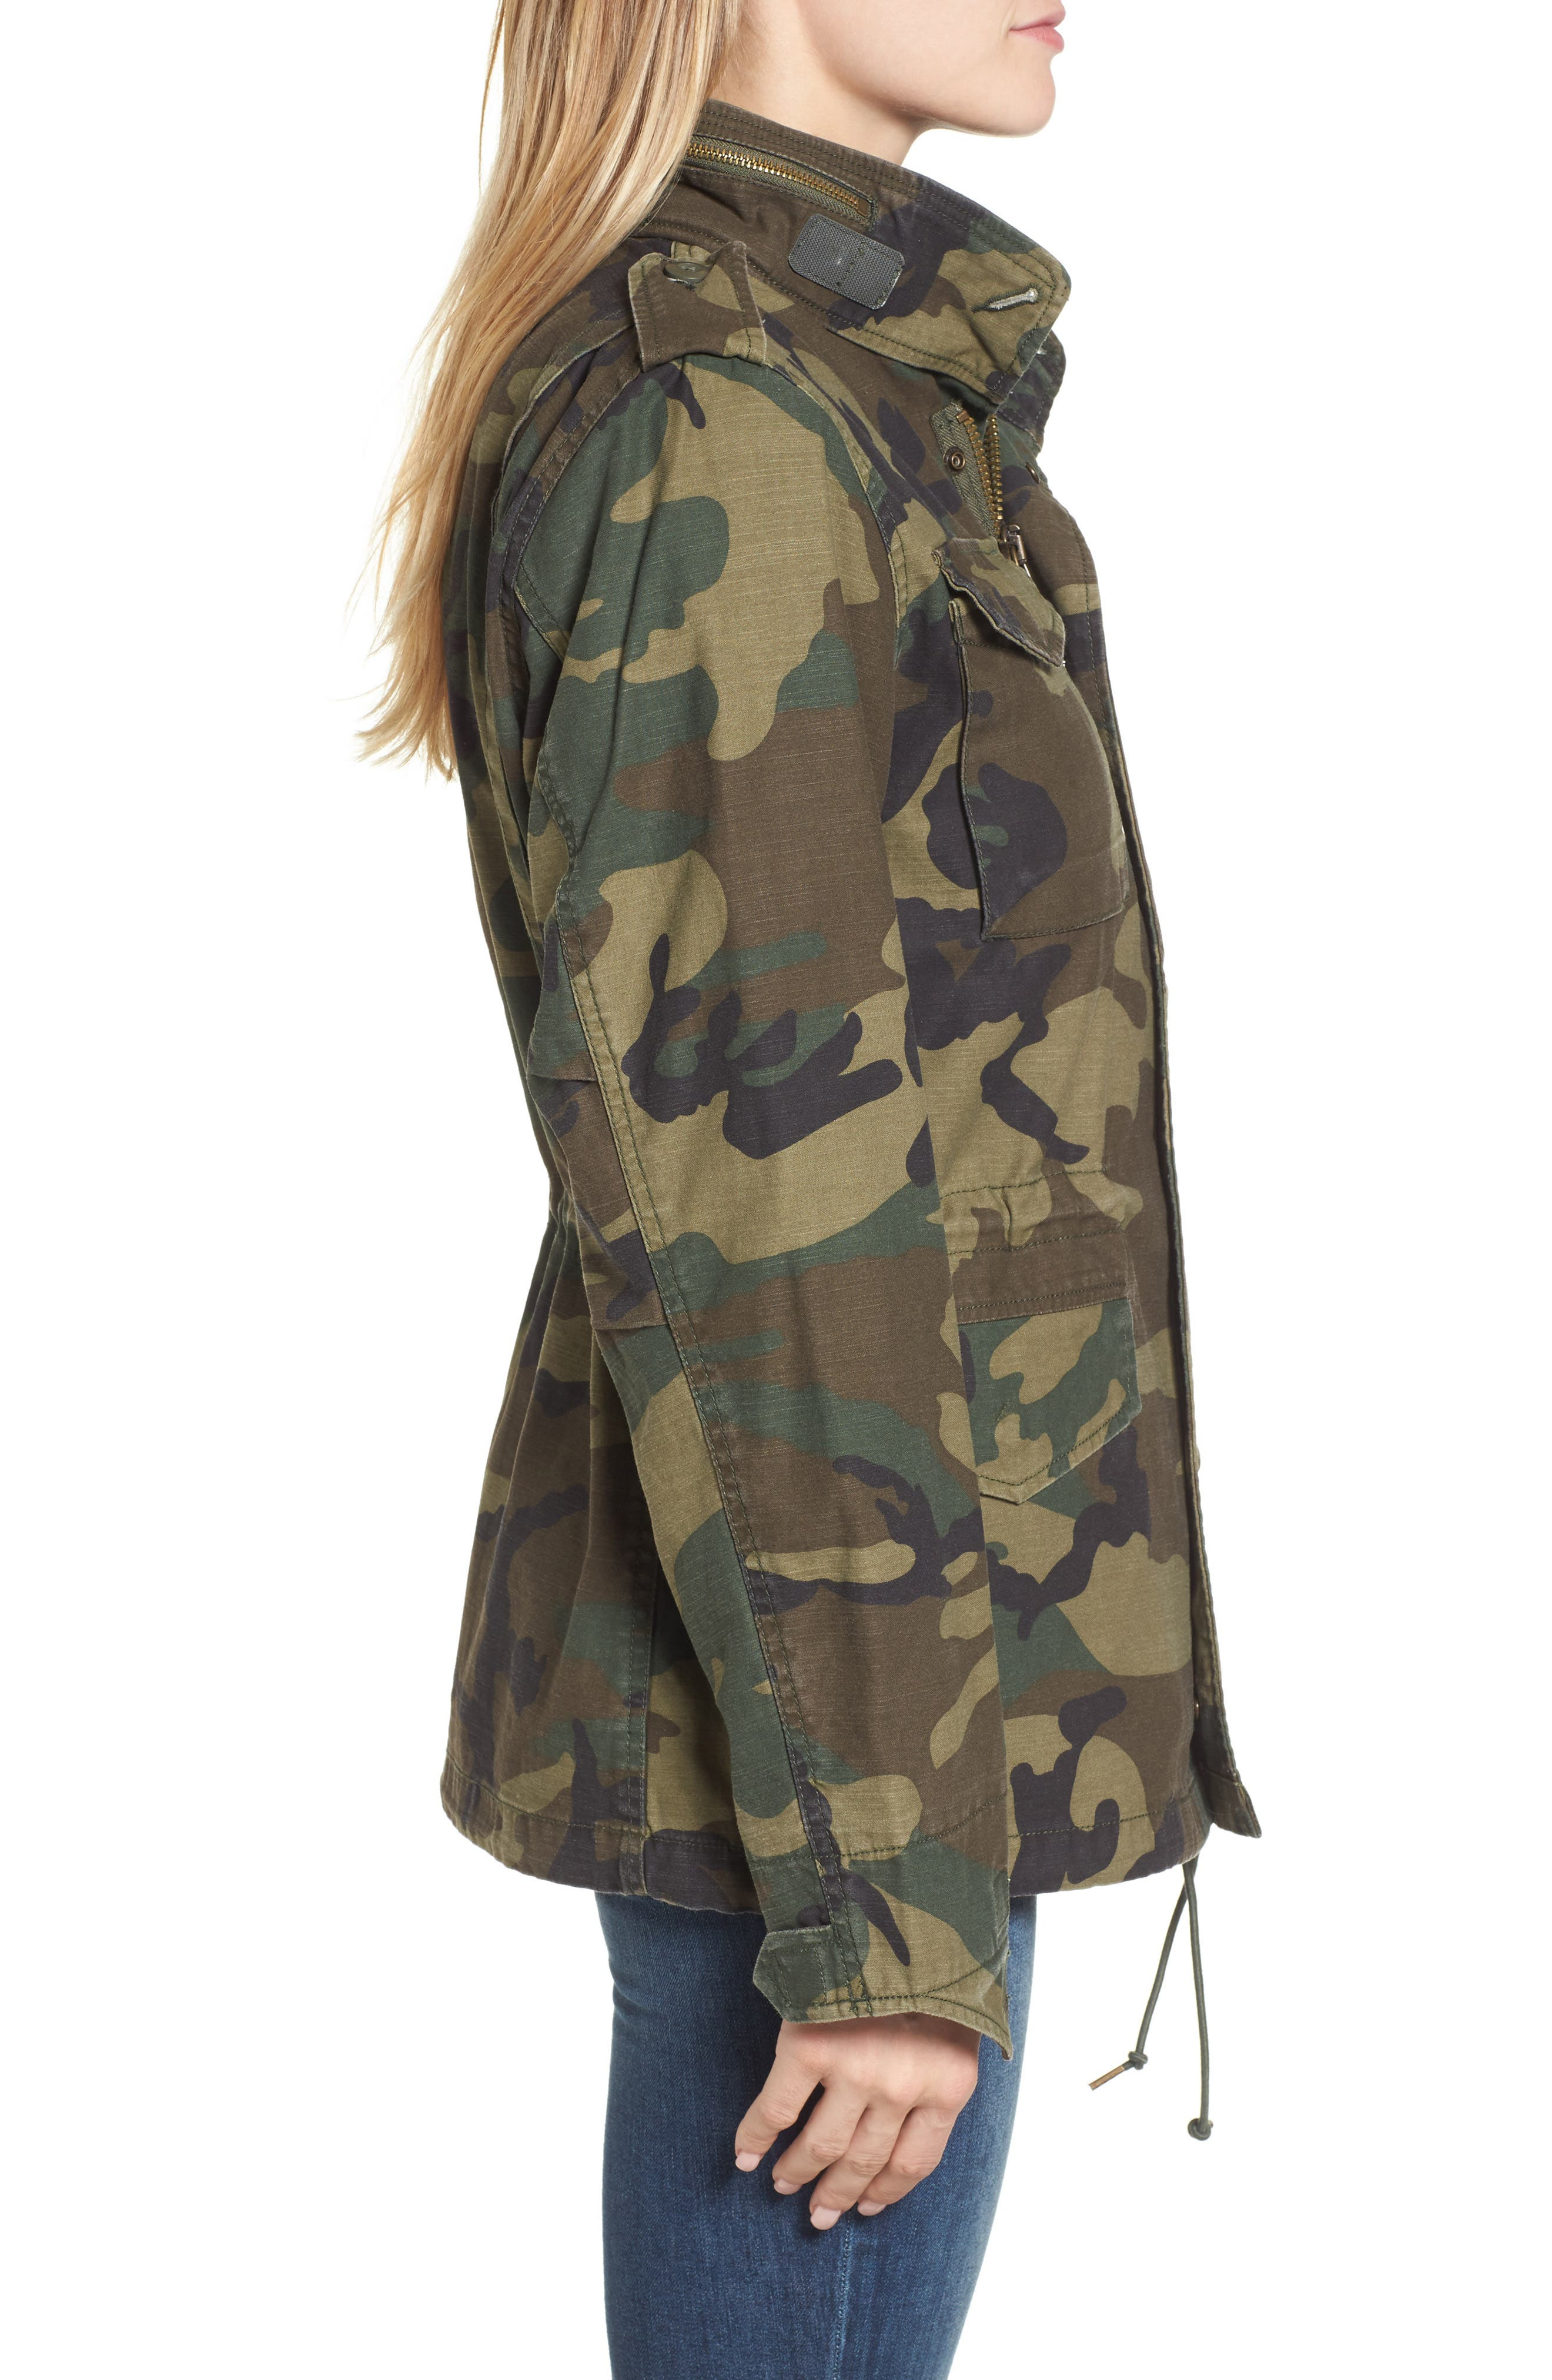 M-65 Defender Camo Field Jacket,                             Alternate thumbnail 3, color,                             WOODLAND CAMO